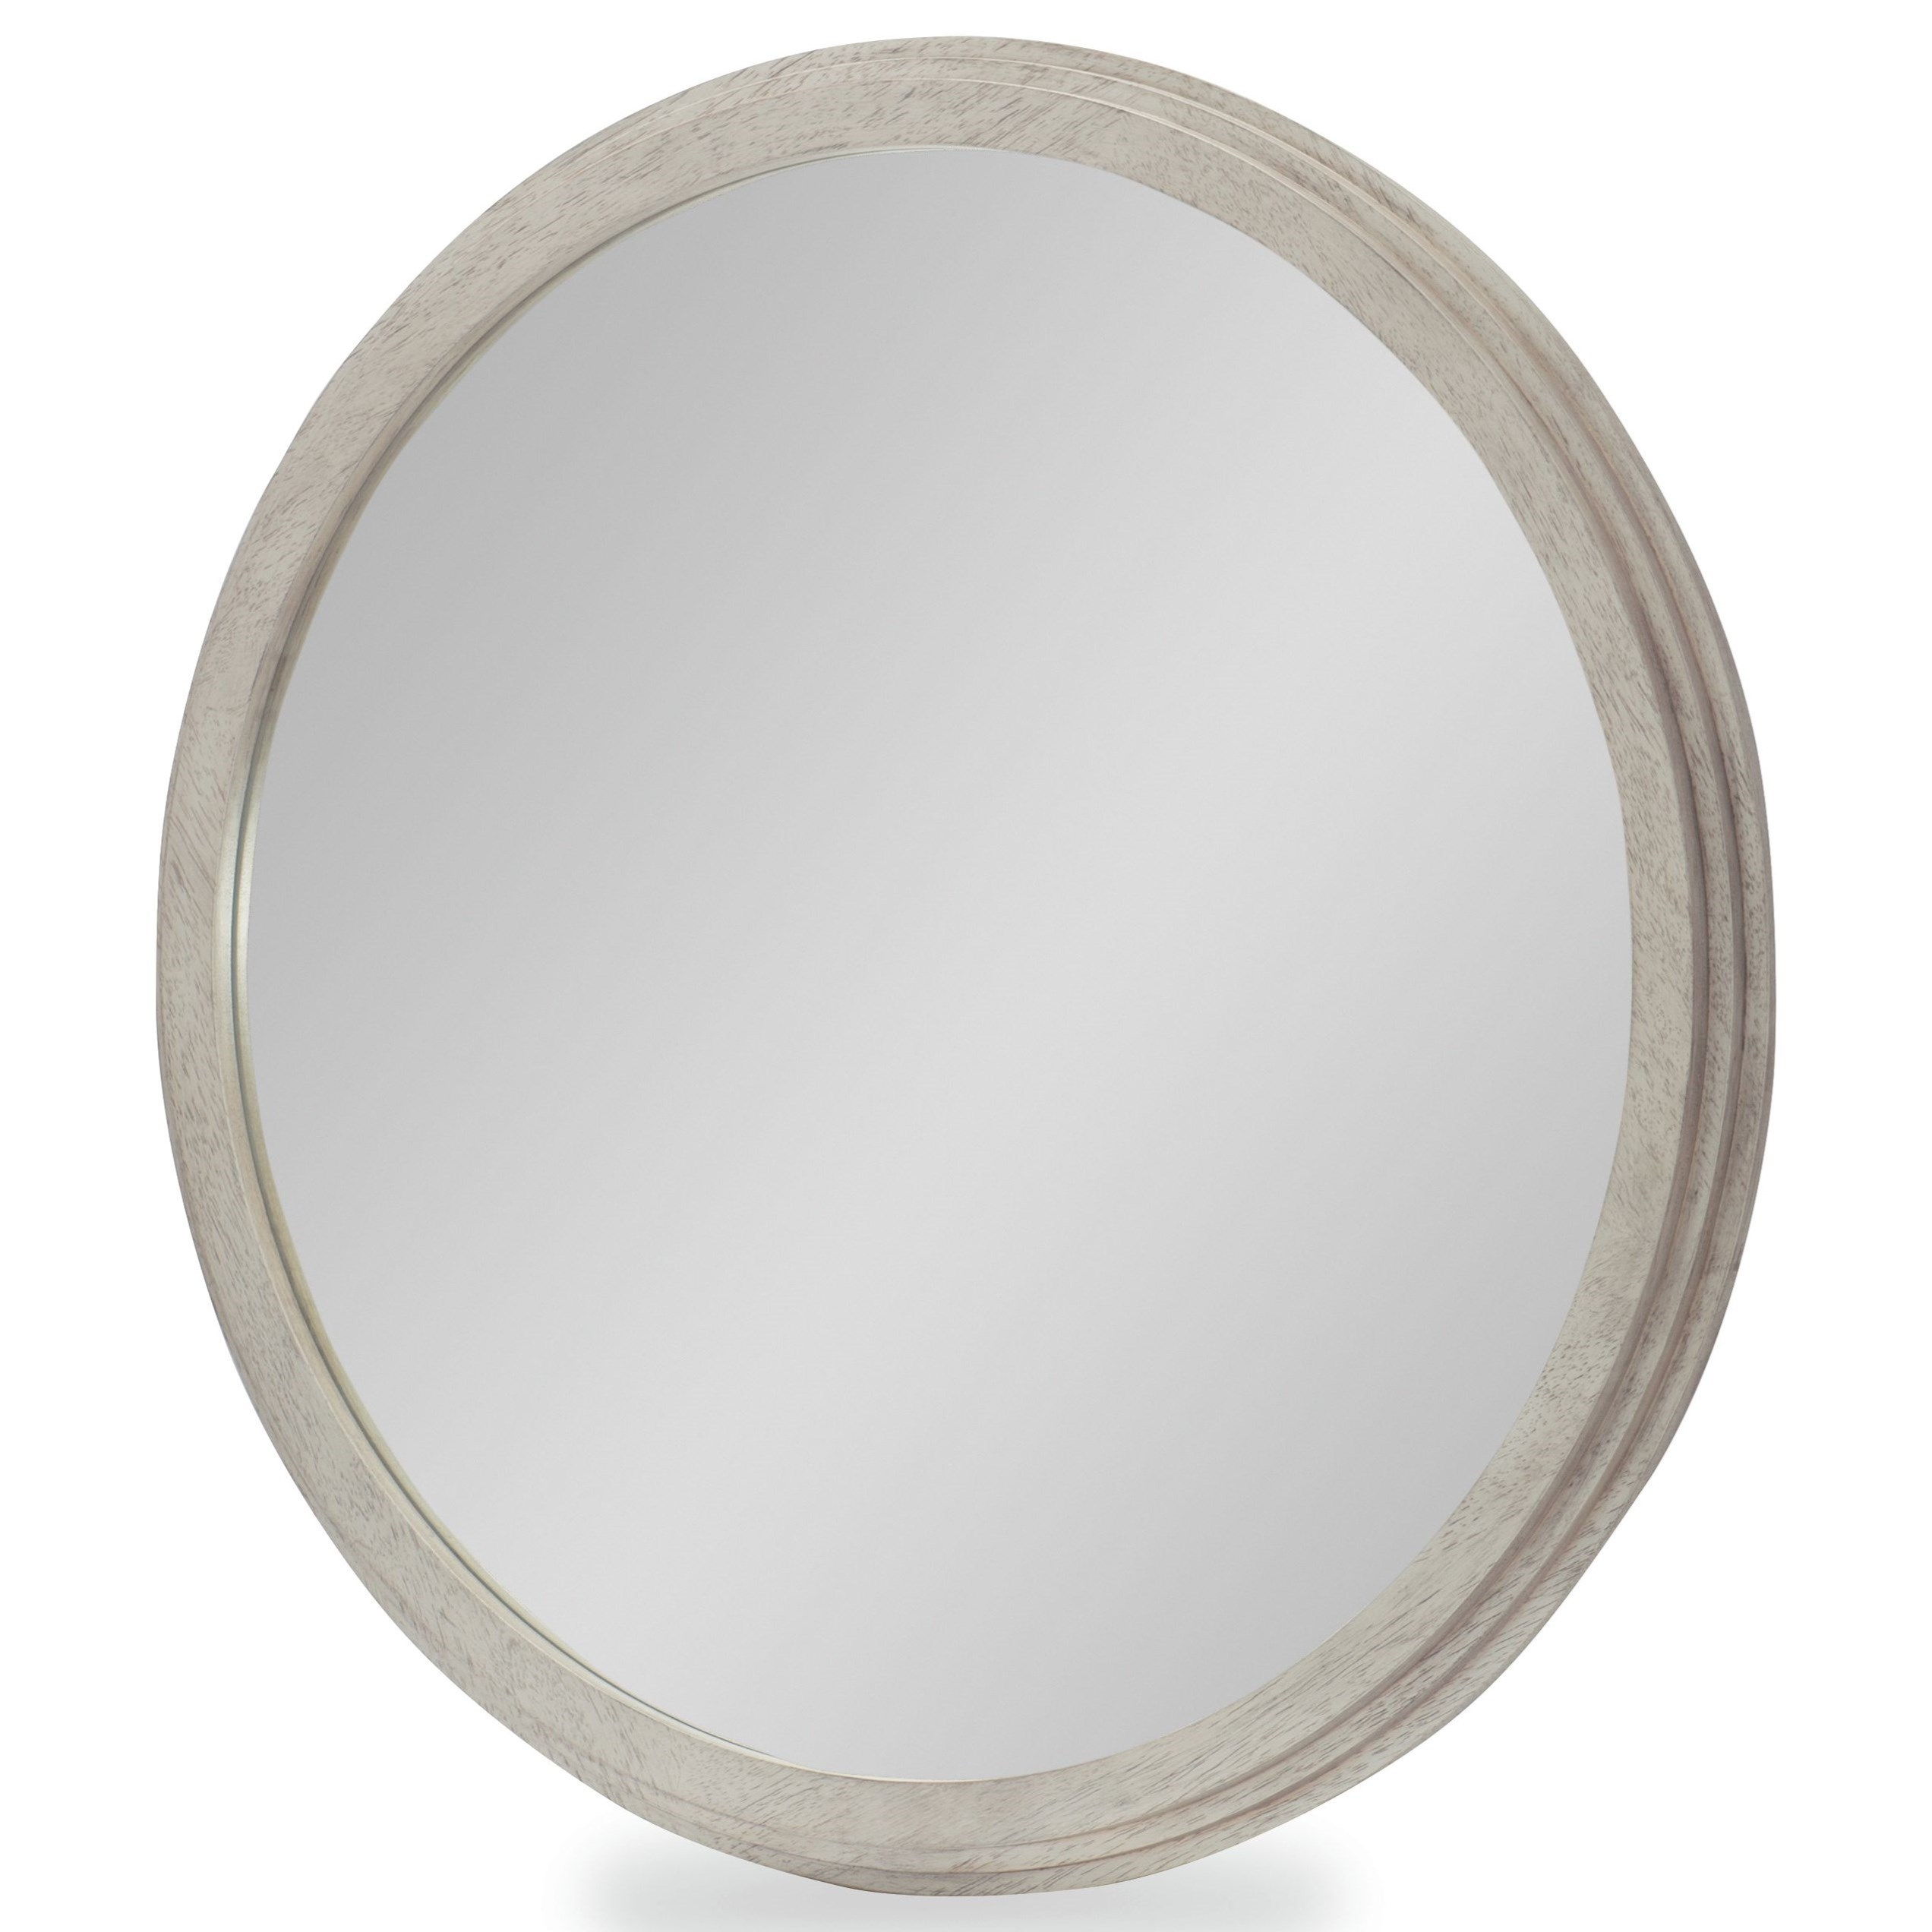 Cinema Round Mirror  by Rachael Ray Home by Legacy Classic at Stoney Creek Furniture